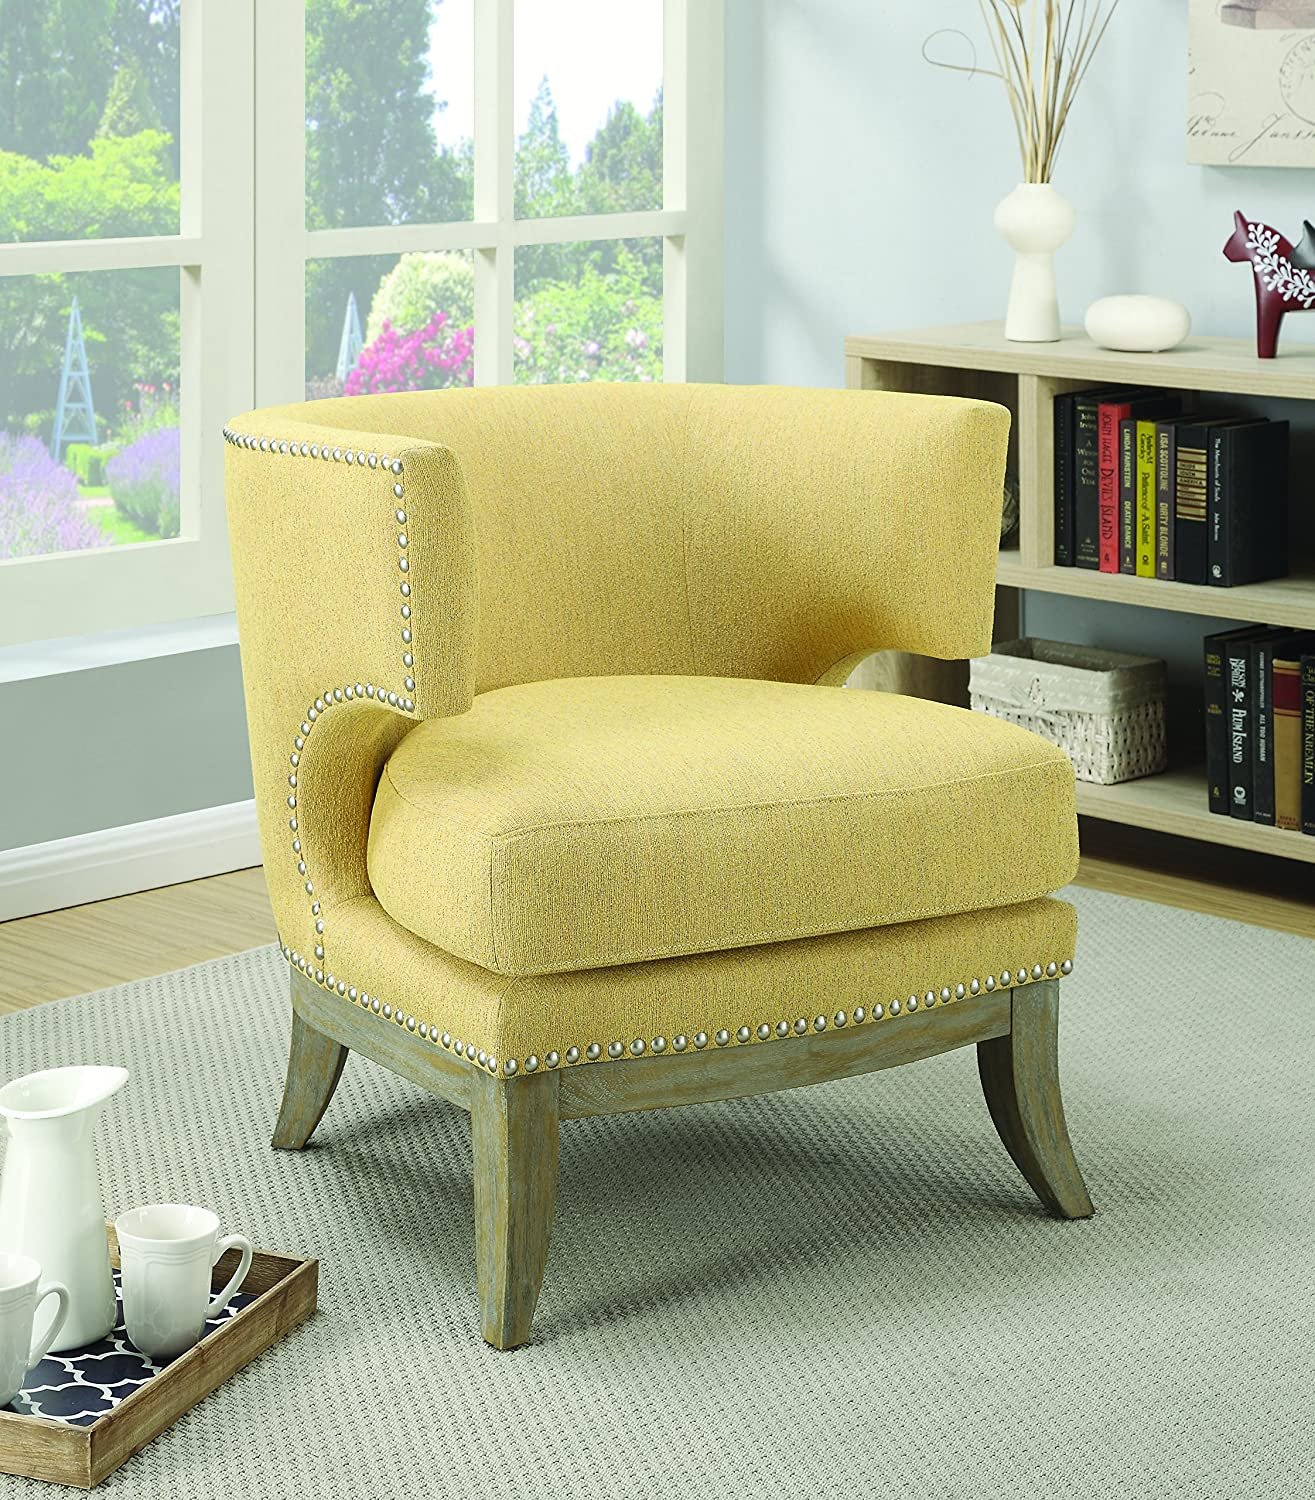 Superb Details About Coaster Home Furnishings Accent Chair With Barrel Back Yellow And Weathered Grey Machost Co Dining Chair Design Ideas Machostcouk